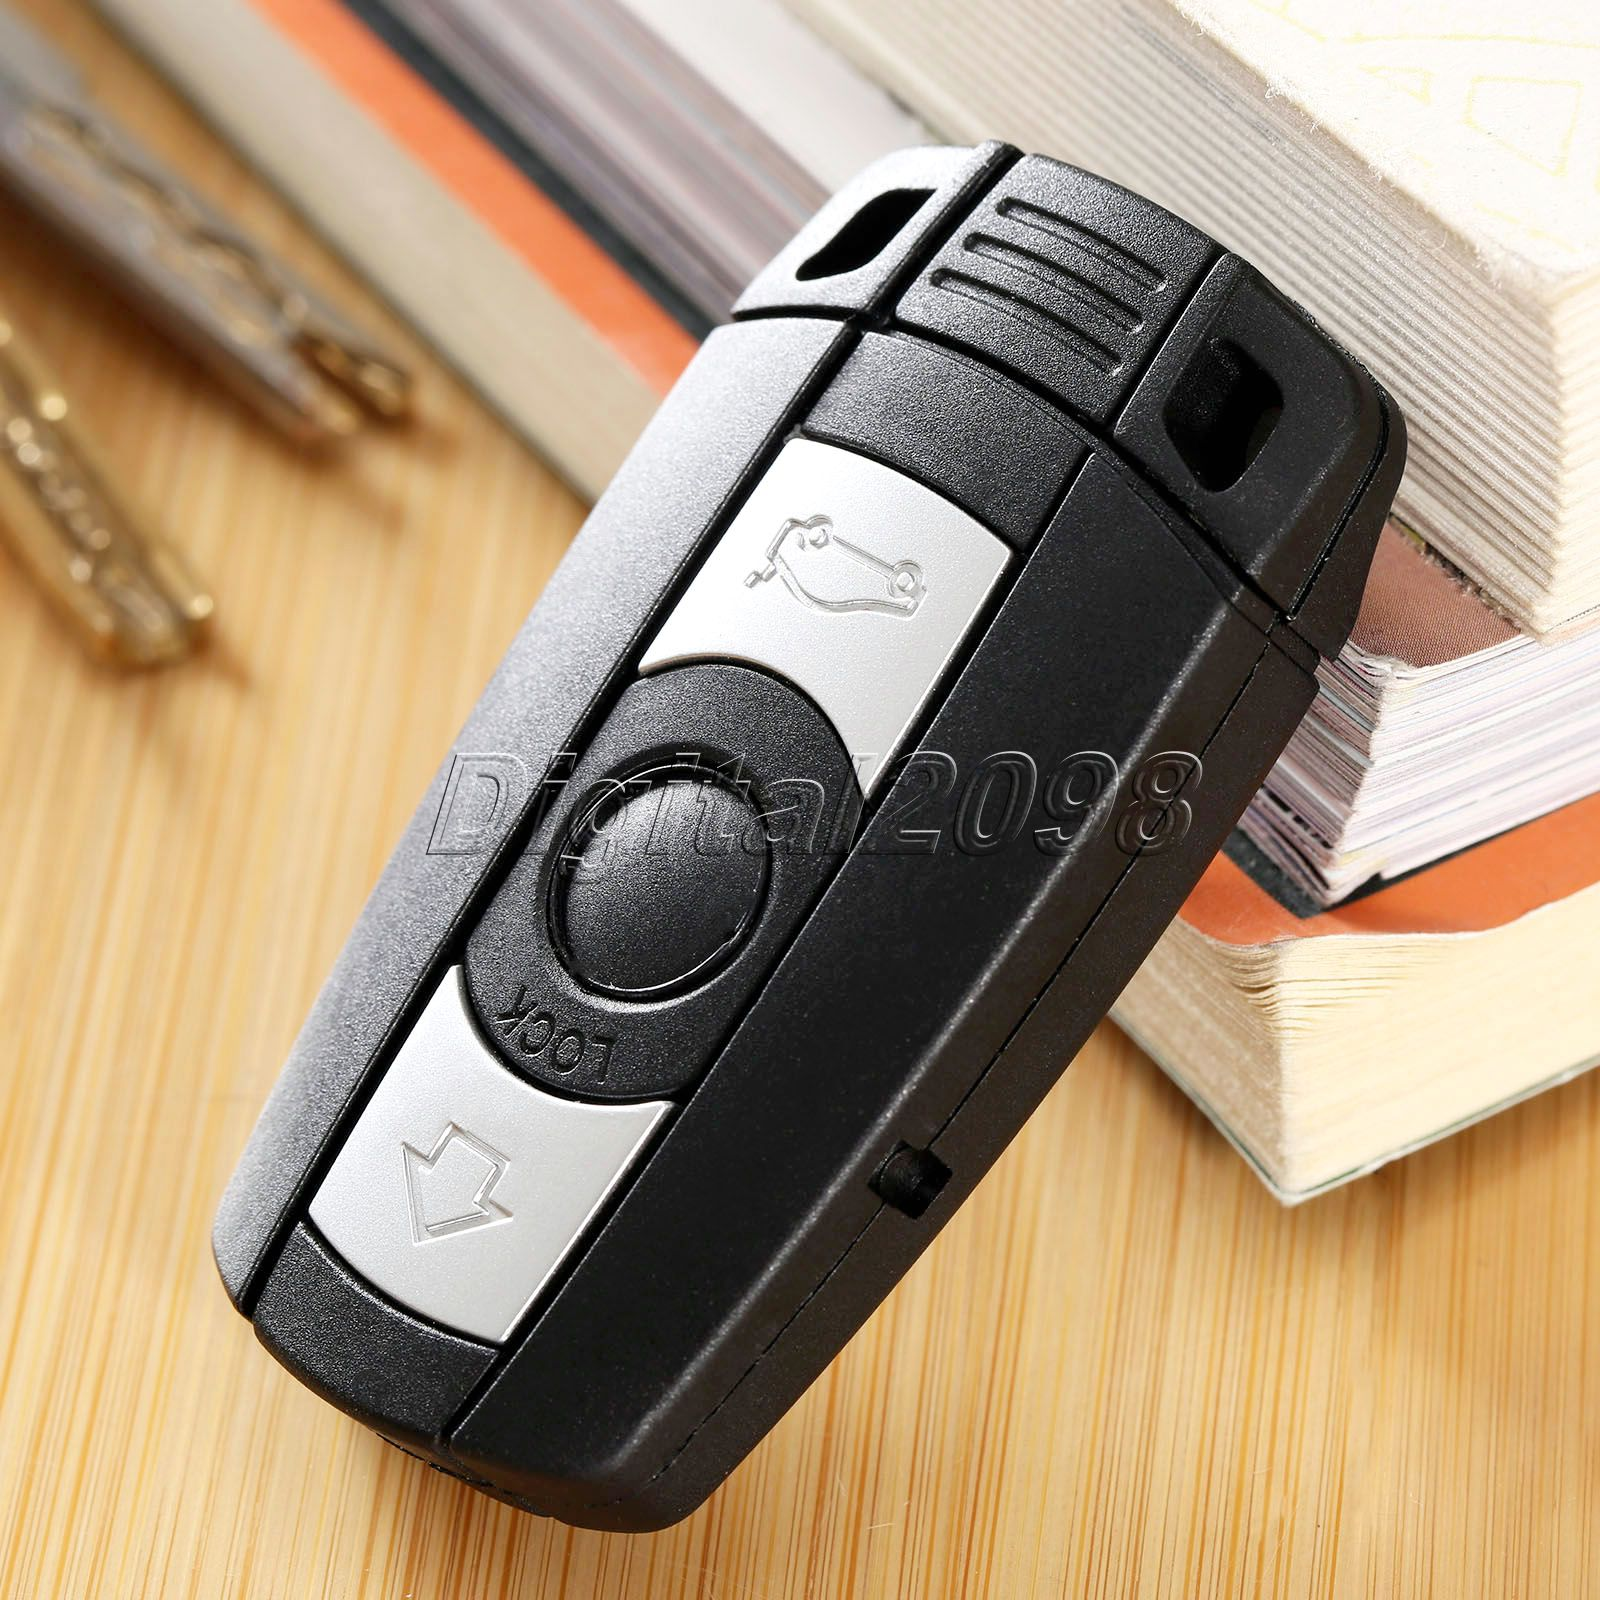 New Flip Key Shell Case Part Fit for BMW 1 3 5 6 7 Series Flip Remote Key Blank with Blade Keyless Case Auto Replacement Parts(China (Mainland))